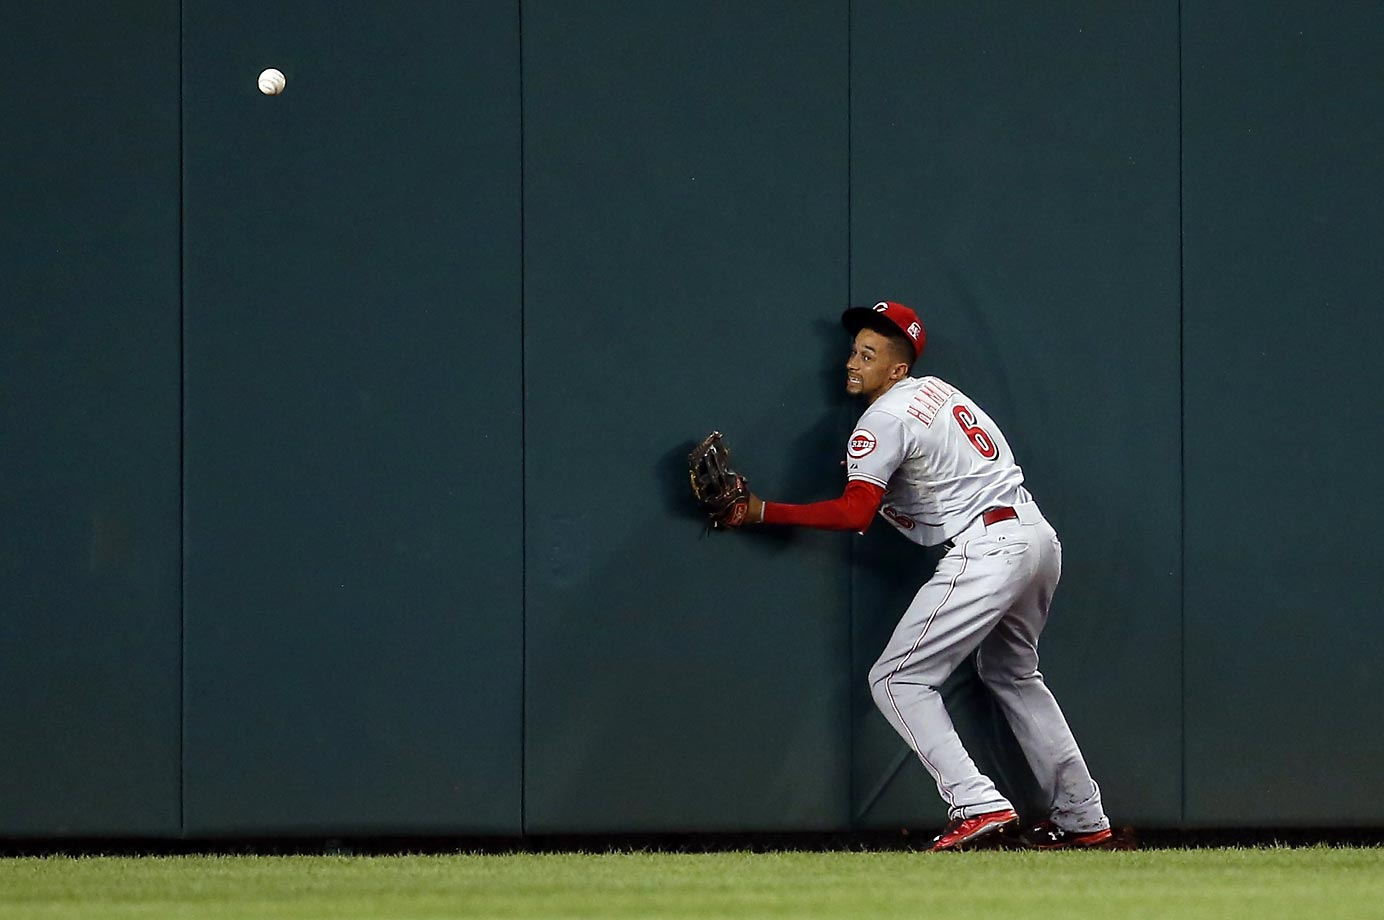 Billy Hamilton of the Cincinnati Reds bounces off the wall in a game against the Washington Nationals.